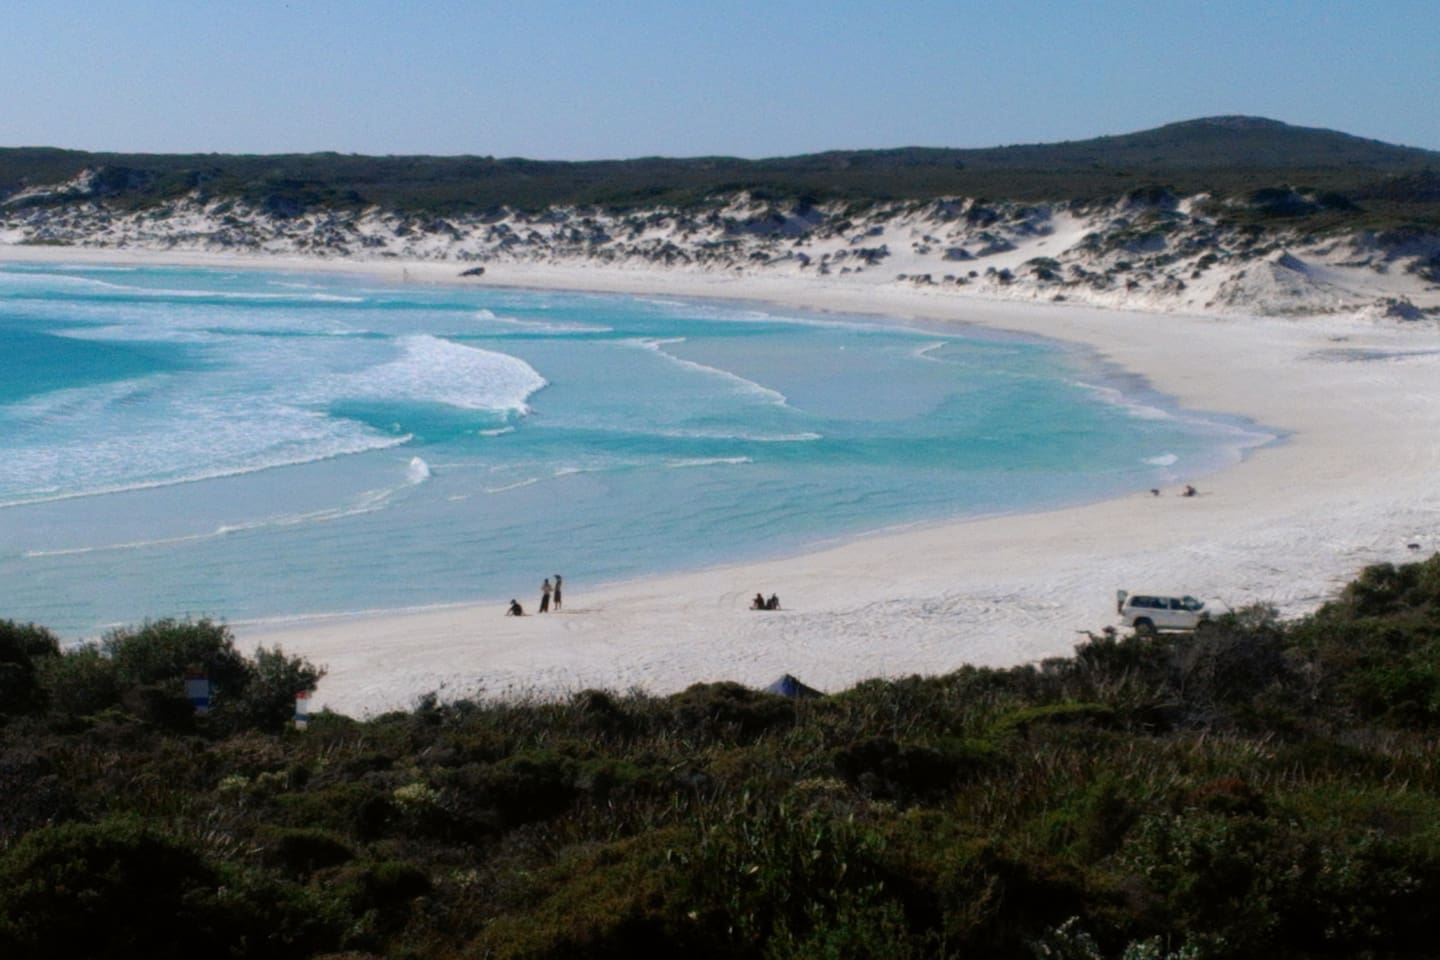 the beautiful whartons Bay not far from 'me mates place' come walk on the squeaky sand and No over crowding here.